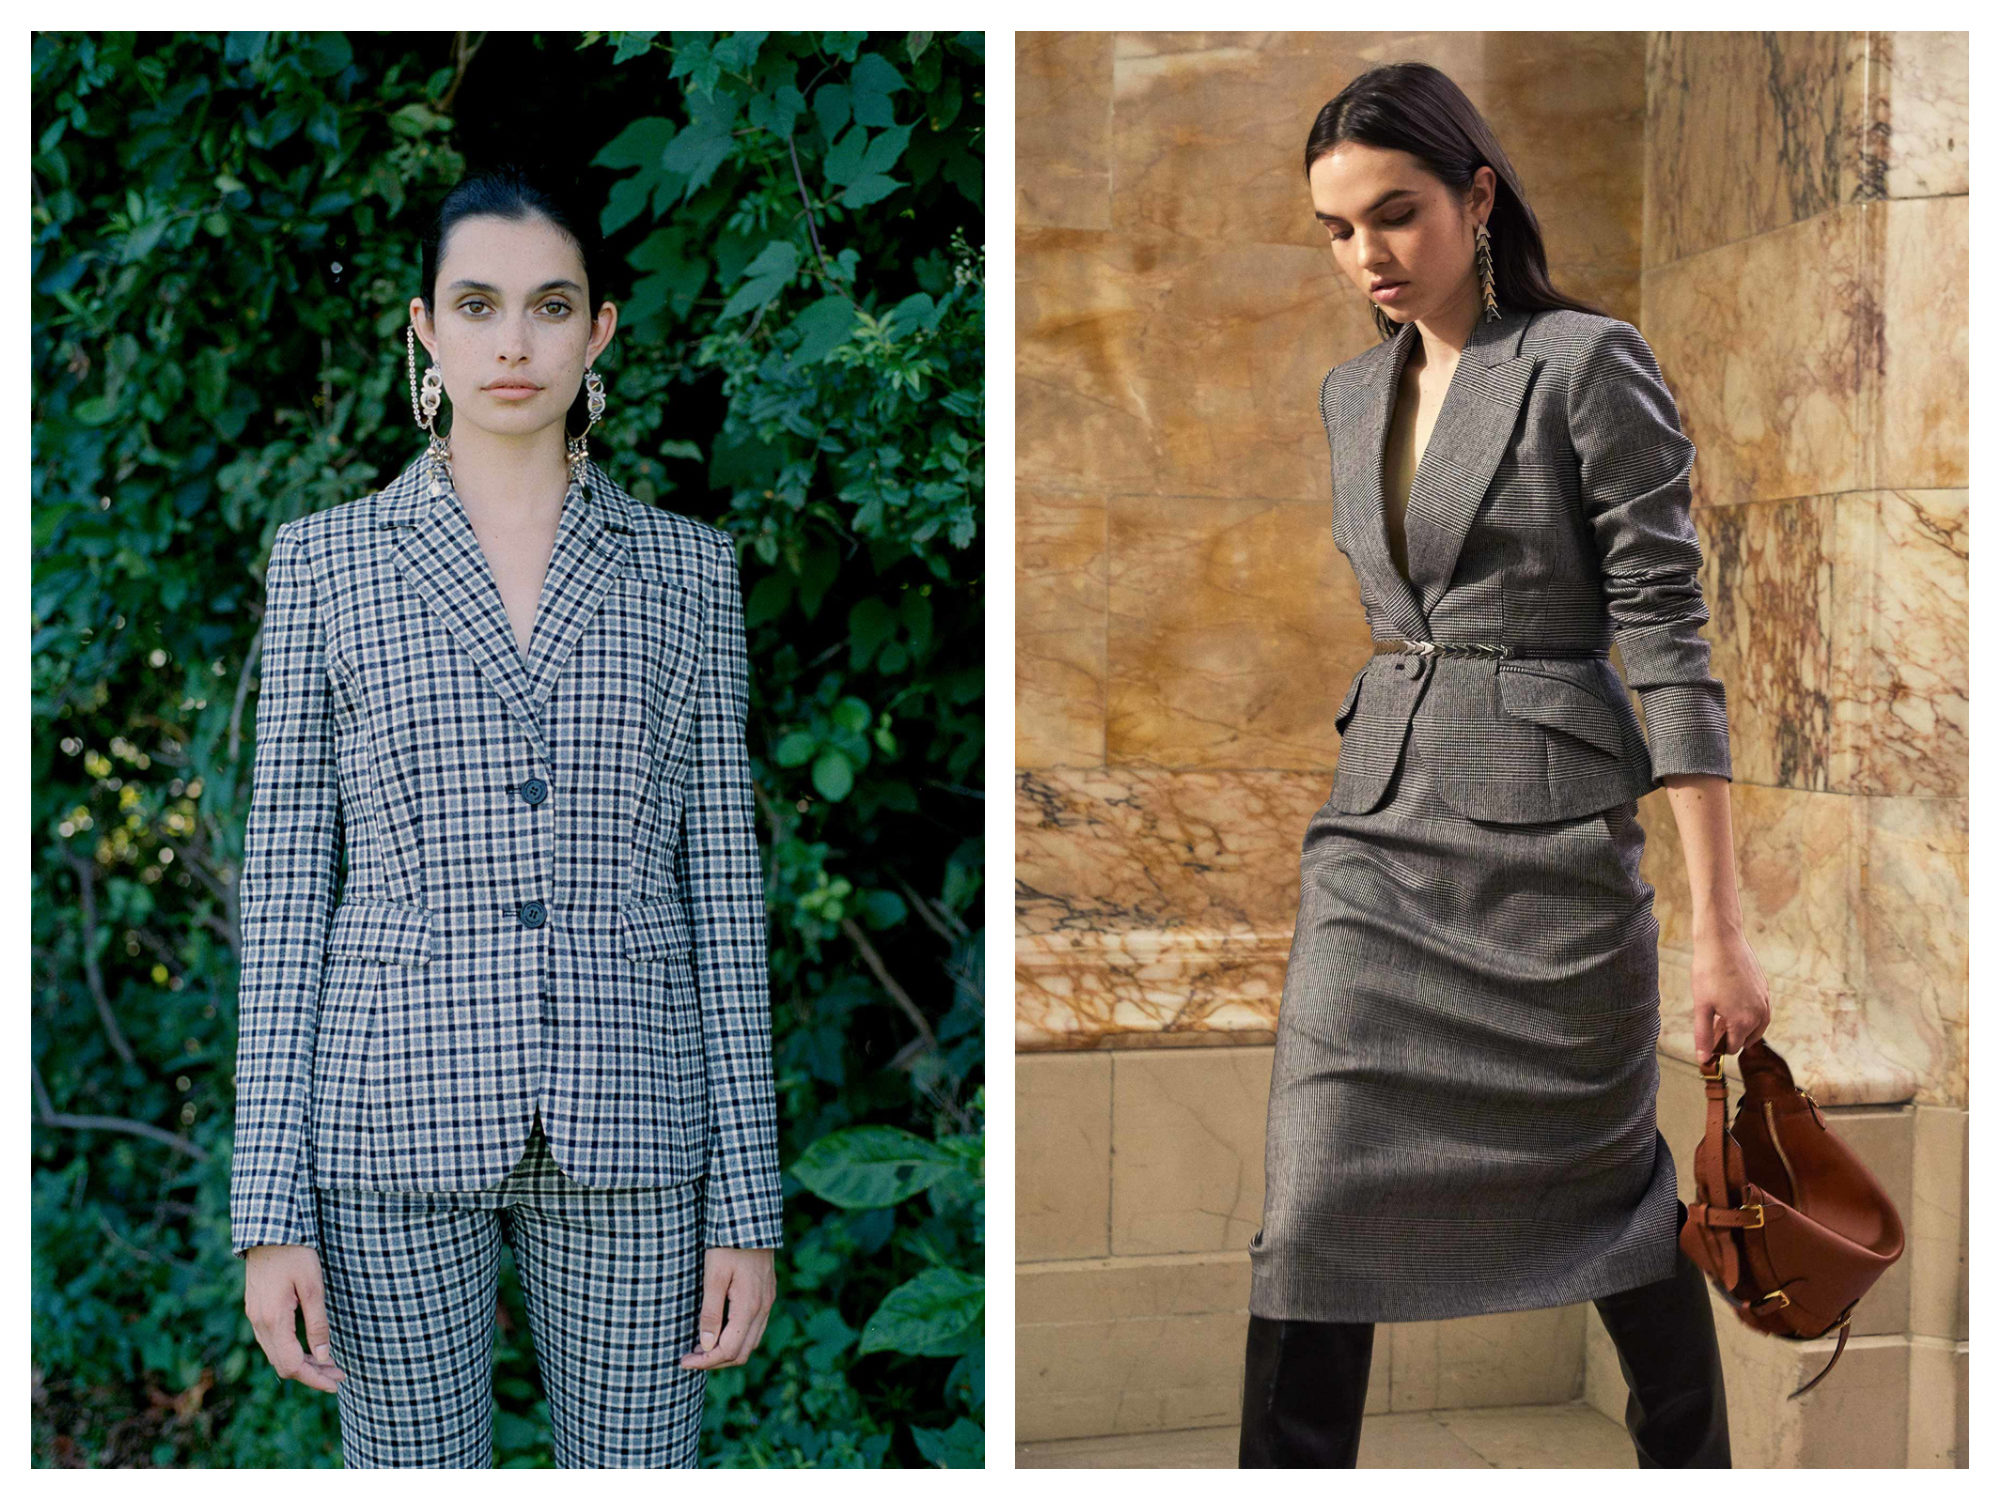 Chequered suits (left) and blazer-and-skirts (right) are this winter's fashion trend from Paris Fashion Week.